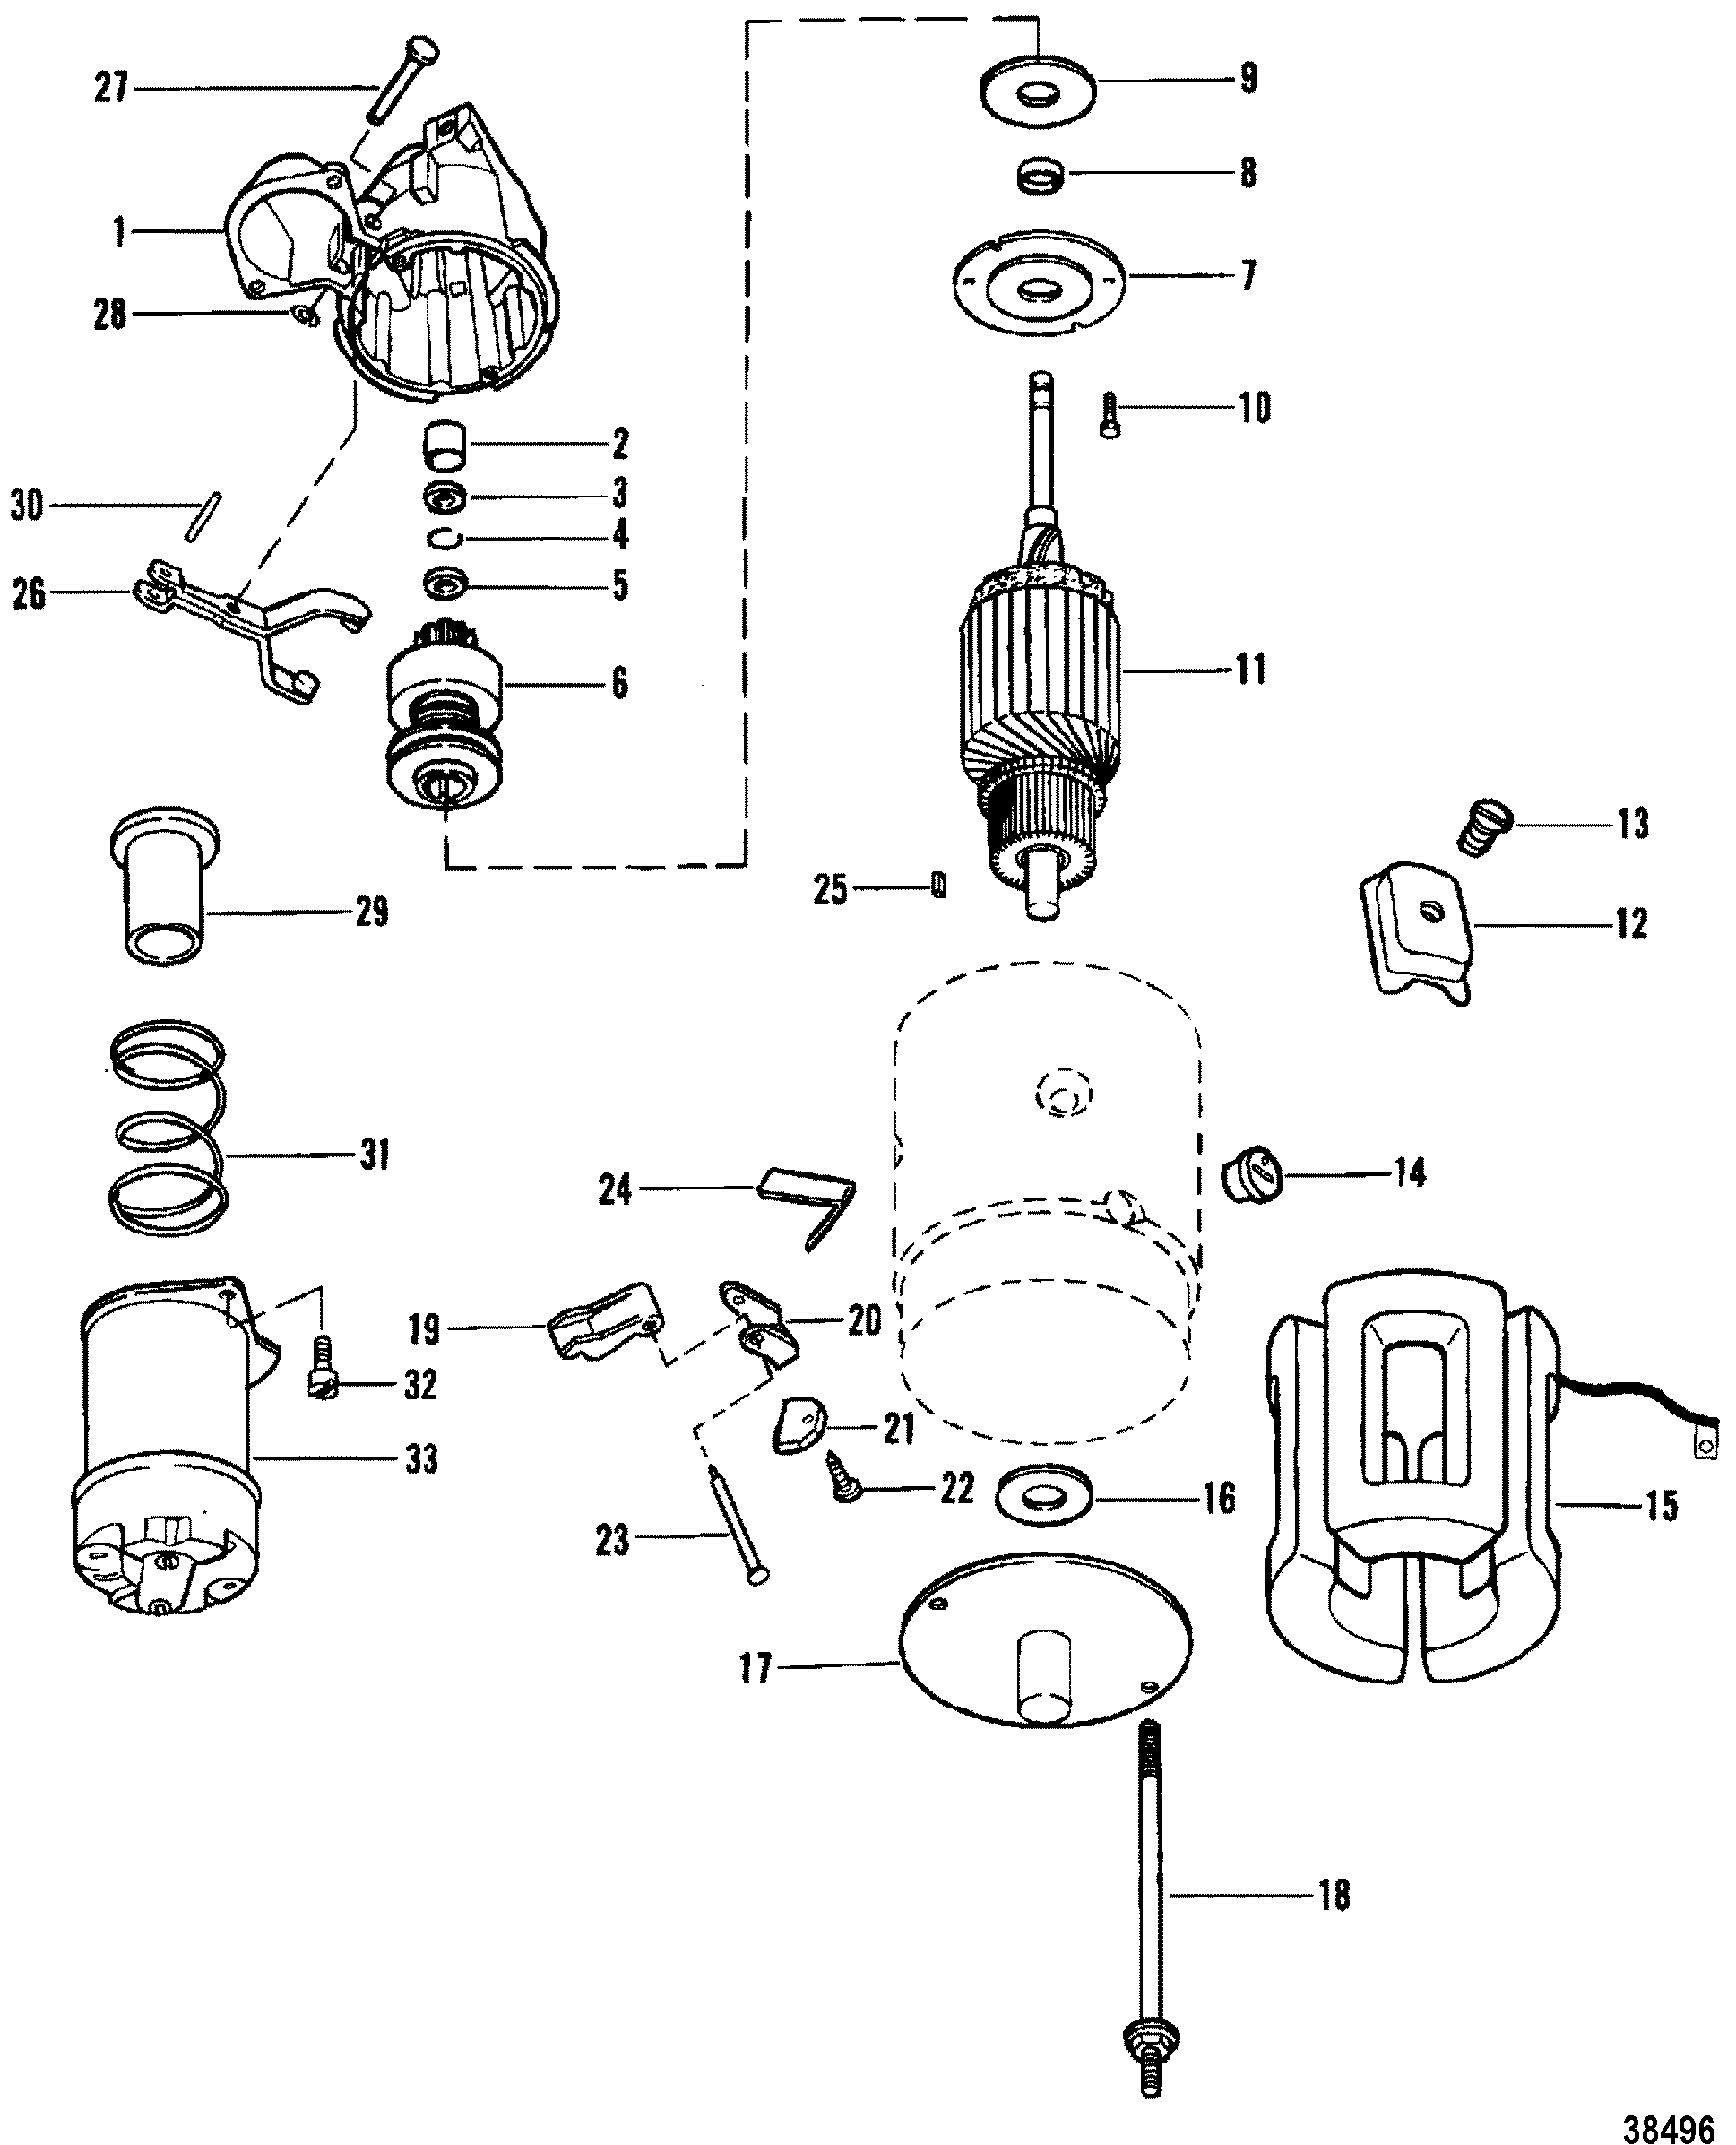 STARTER MOTOR USE WITH 14 FLYWHEEL FOR MERCRUISER 898/200